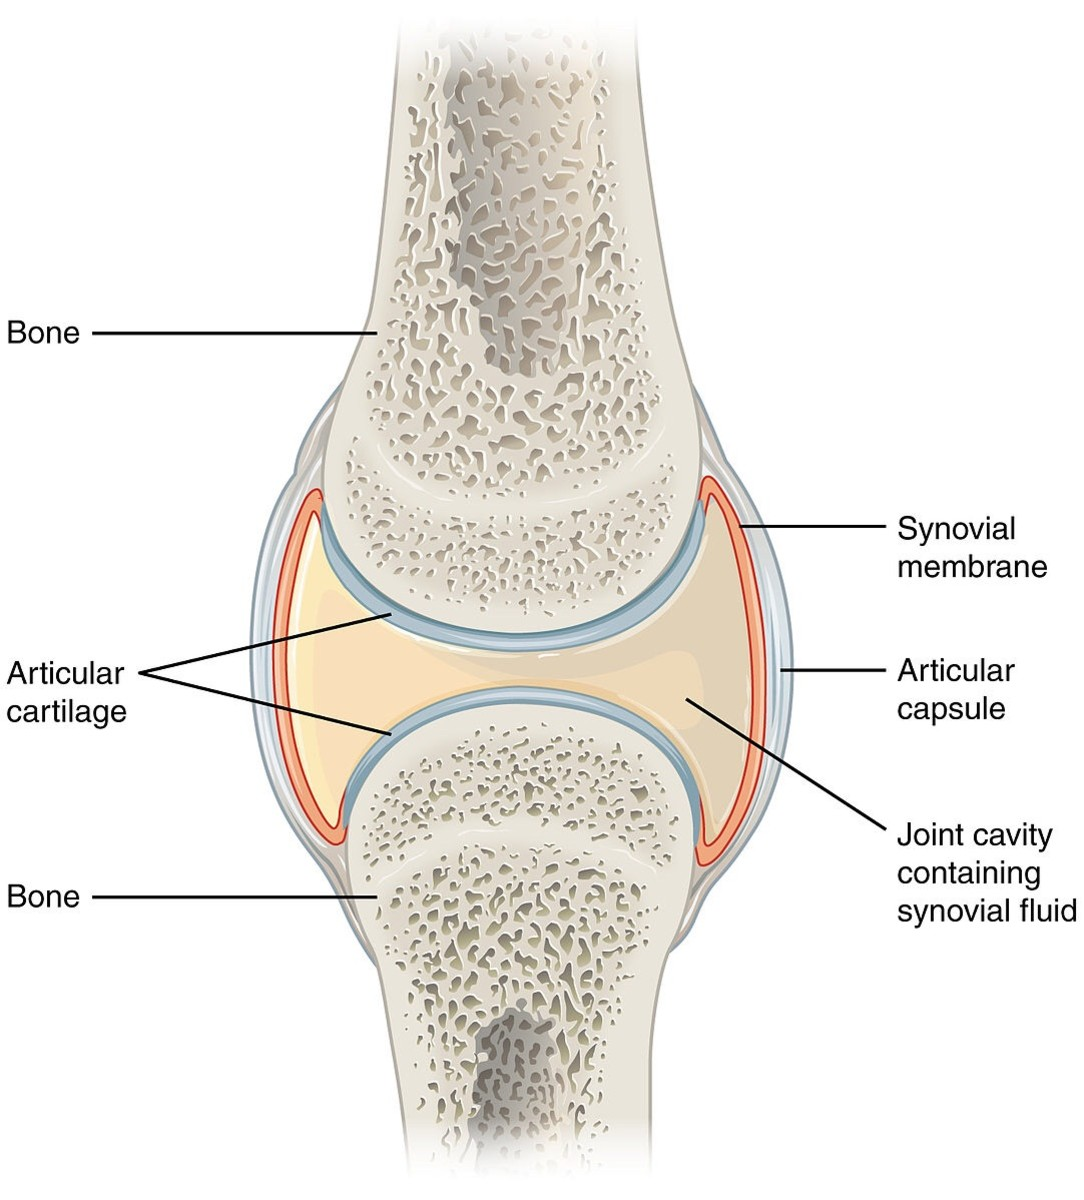 A synovial joint (without the surrounding  ligaments that hold the bones together); inflammation of the synovium, or synovial membrane, is known as synovitis